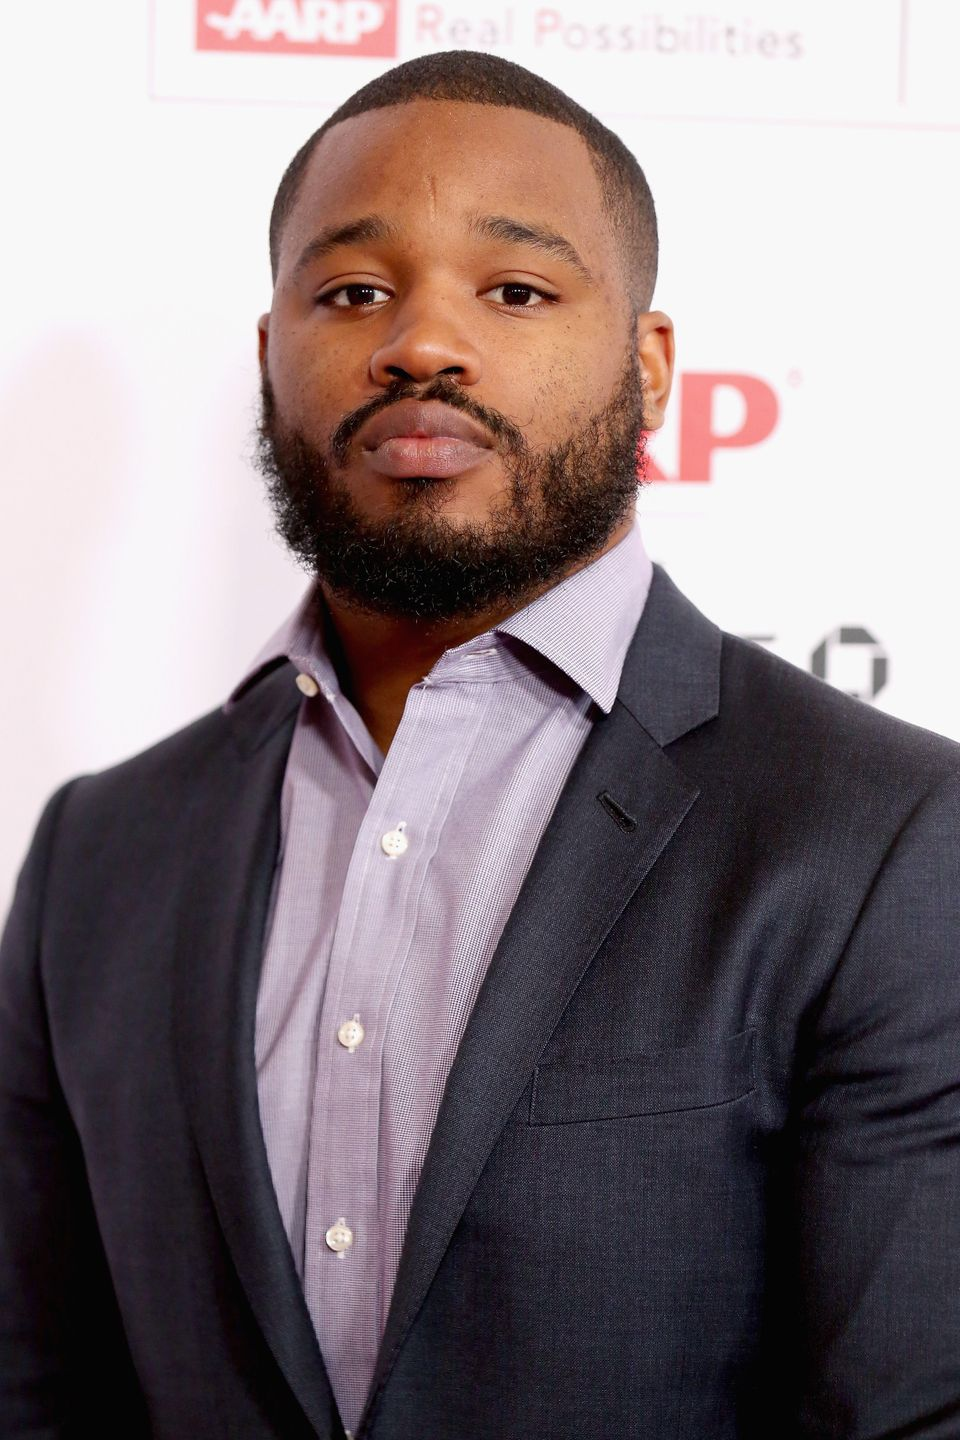 Ryan Coogler is a director, activist and an incredible storyteller. Not only is he using his platform as a director to bring